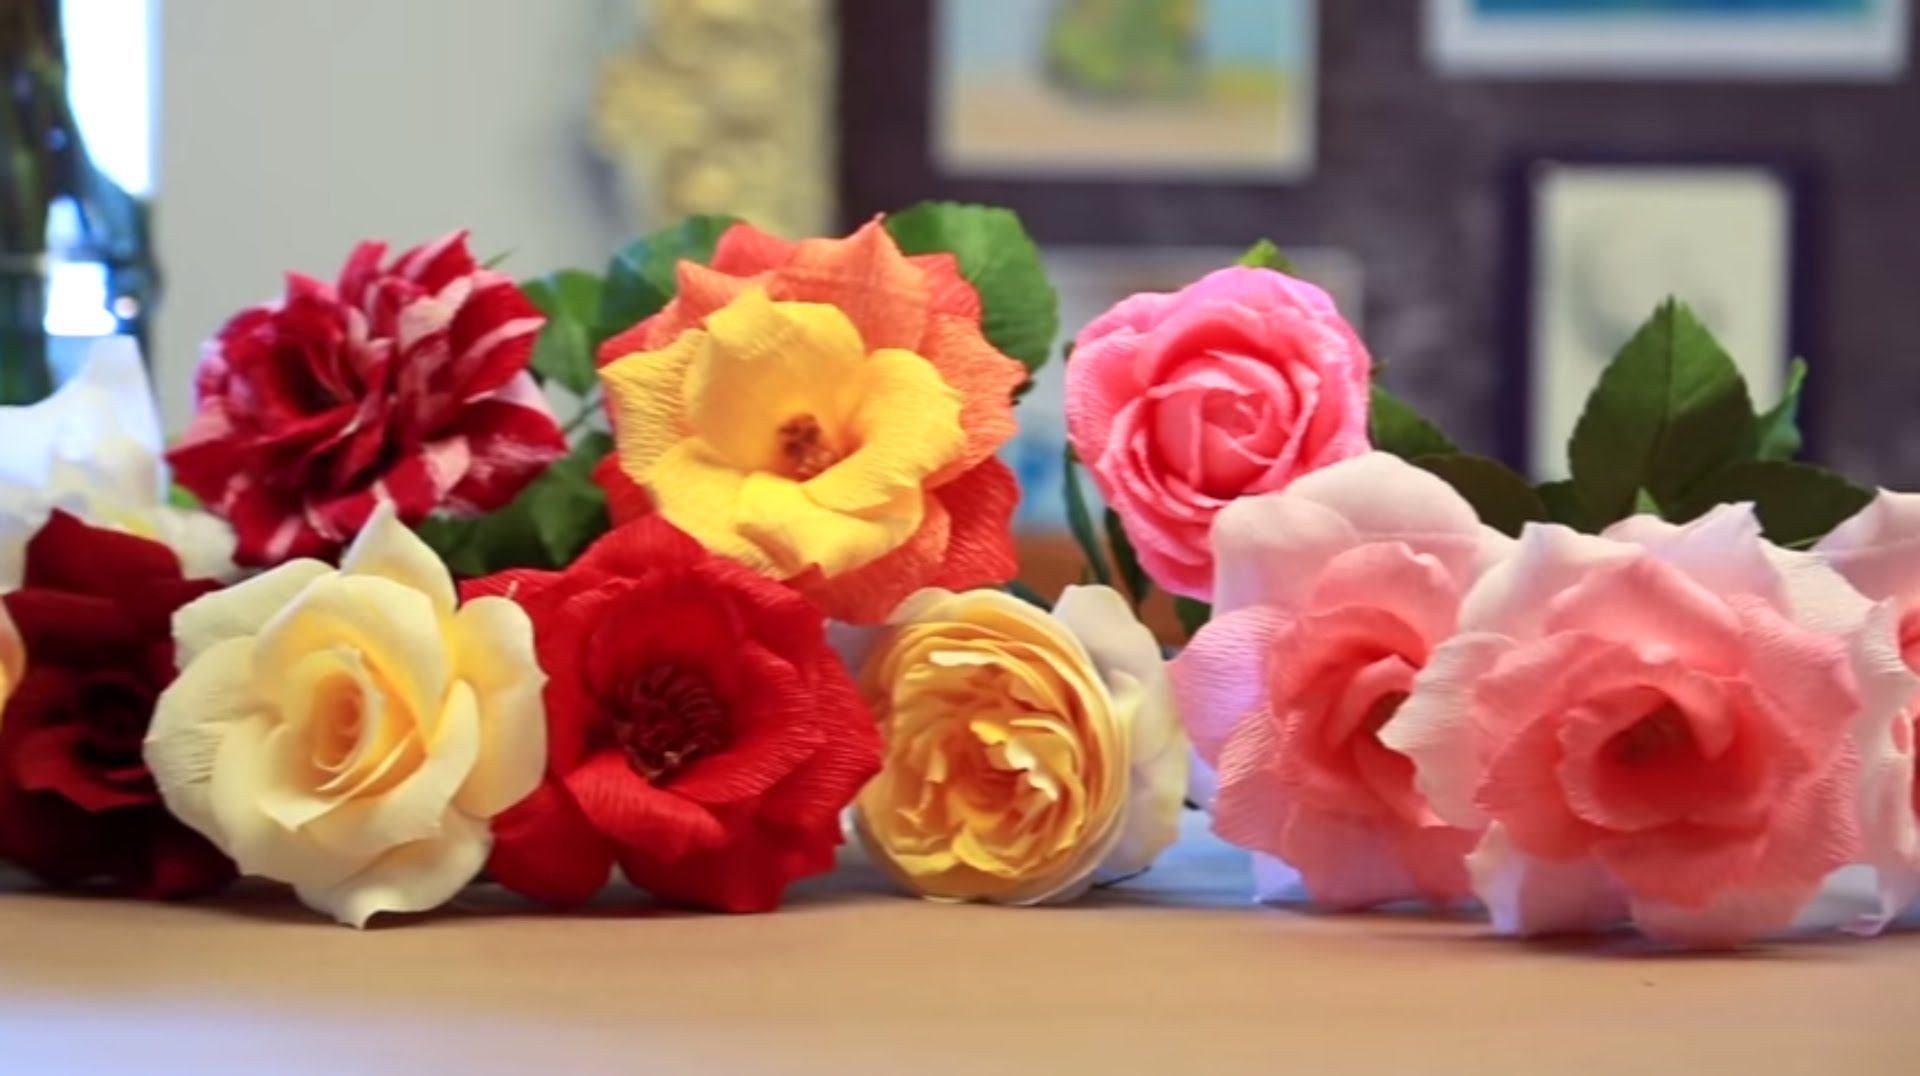 Learn how to make crepe paper roses from the experts as Castle in the Air. Lynn Dolan teaches crepe paper flower making at Castle in the Air, and in this DIY... #crepepaperroses Learn how to make crepe paper roses from the experts as Castle in the Air. Lynn Dolan teaches crepe paper flower making at Castle in the Air, and in this DIY... #crepepaperroses Learn how to make crepe paper roses from the experts as Castle in the Air. Lynn Dolan teaches crepe paper flower making at Castle in the Air, an #crepepaperroses